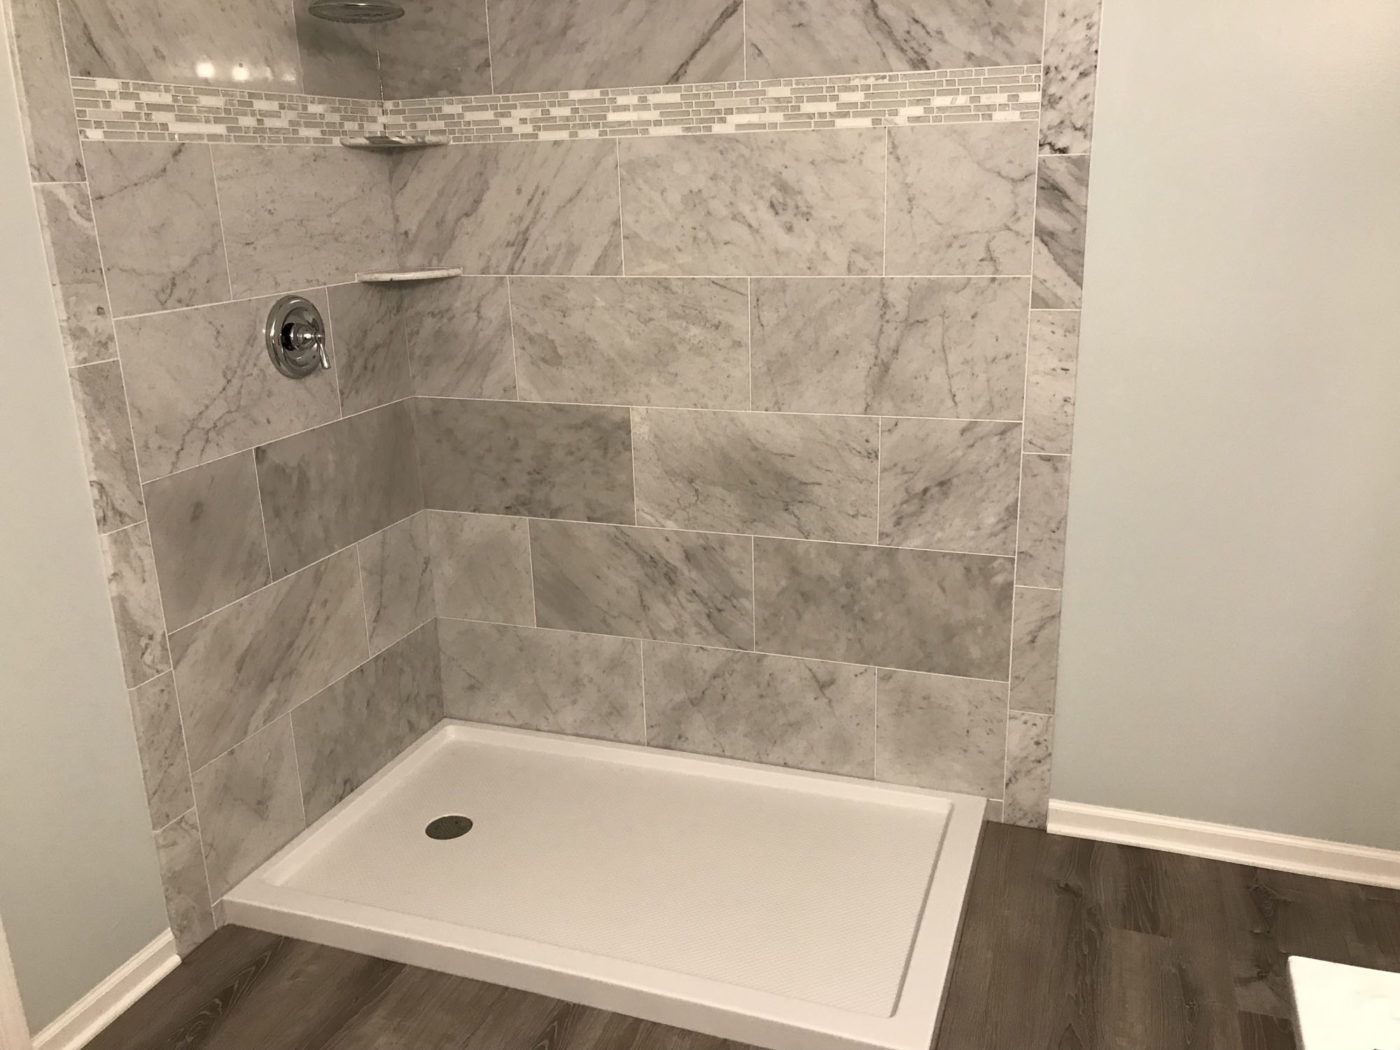 Bathroom remodeling in Algonquin